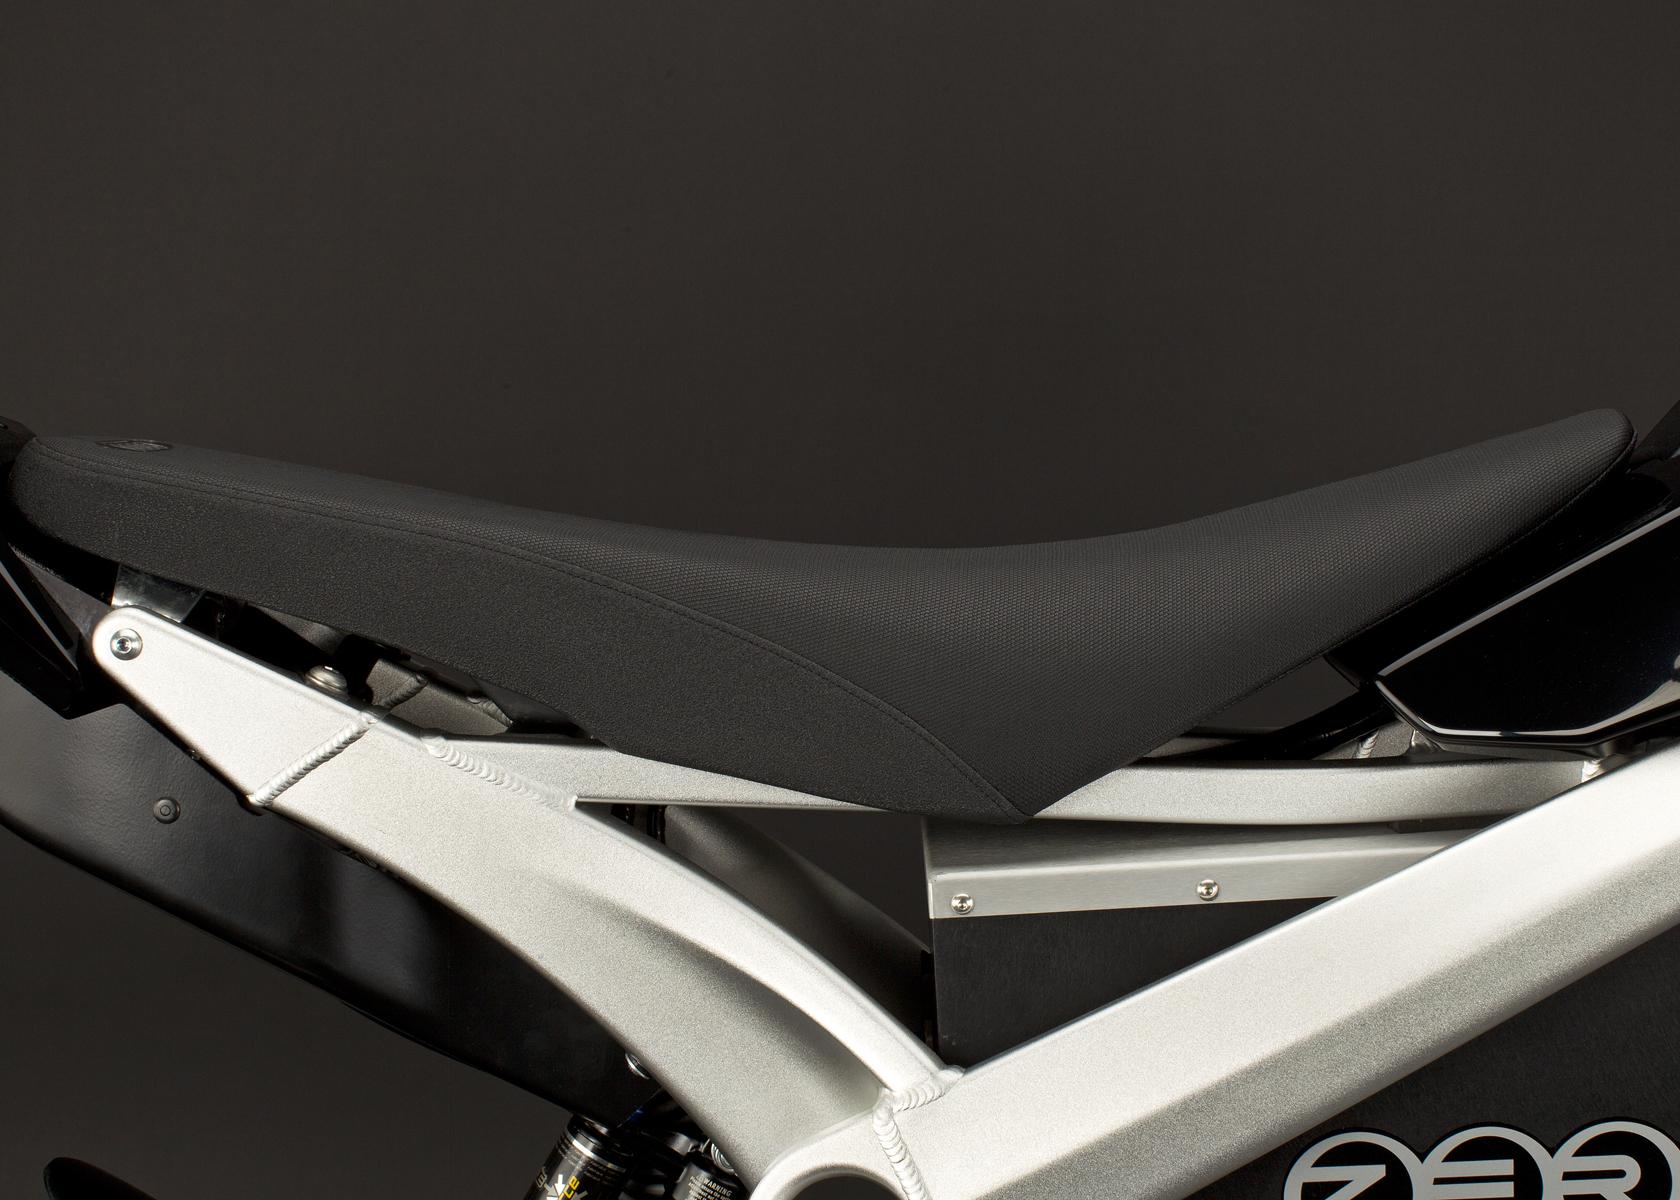 2011 Zero DS Electric Motorcycle: Seat